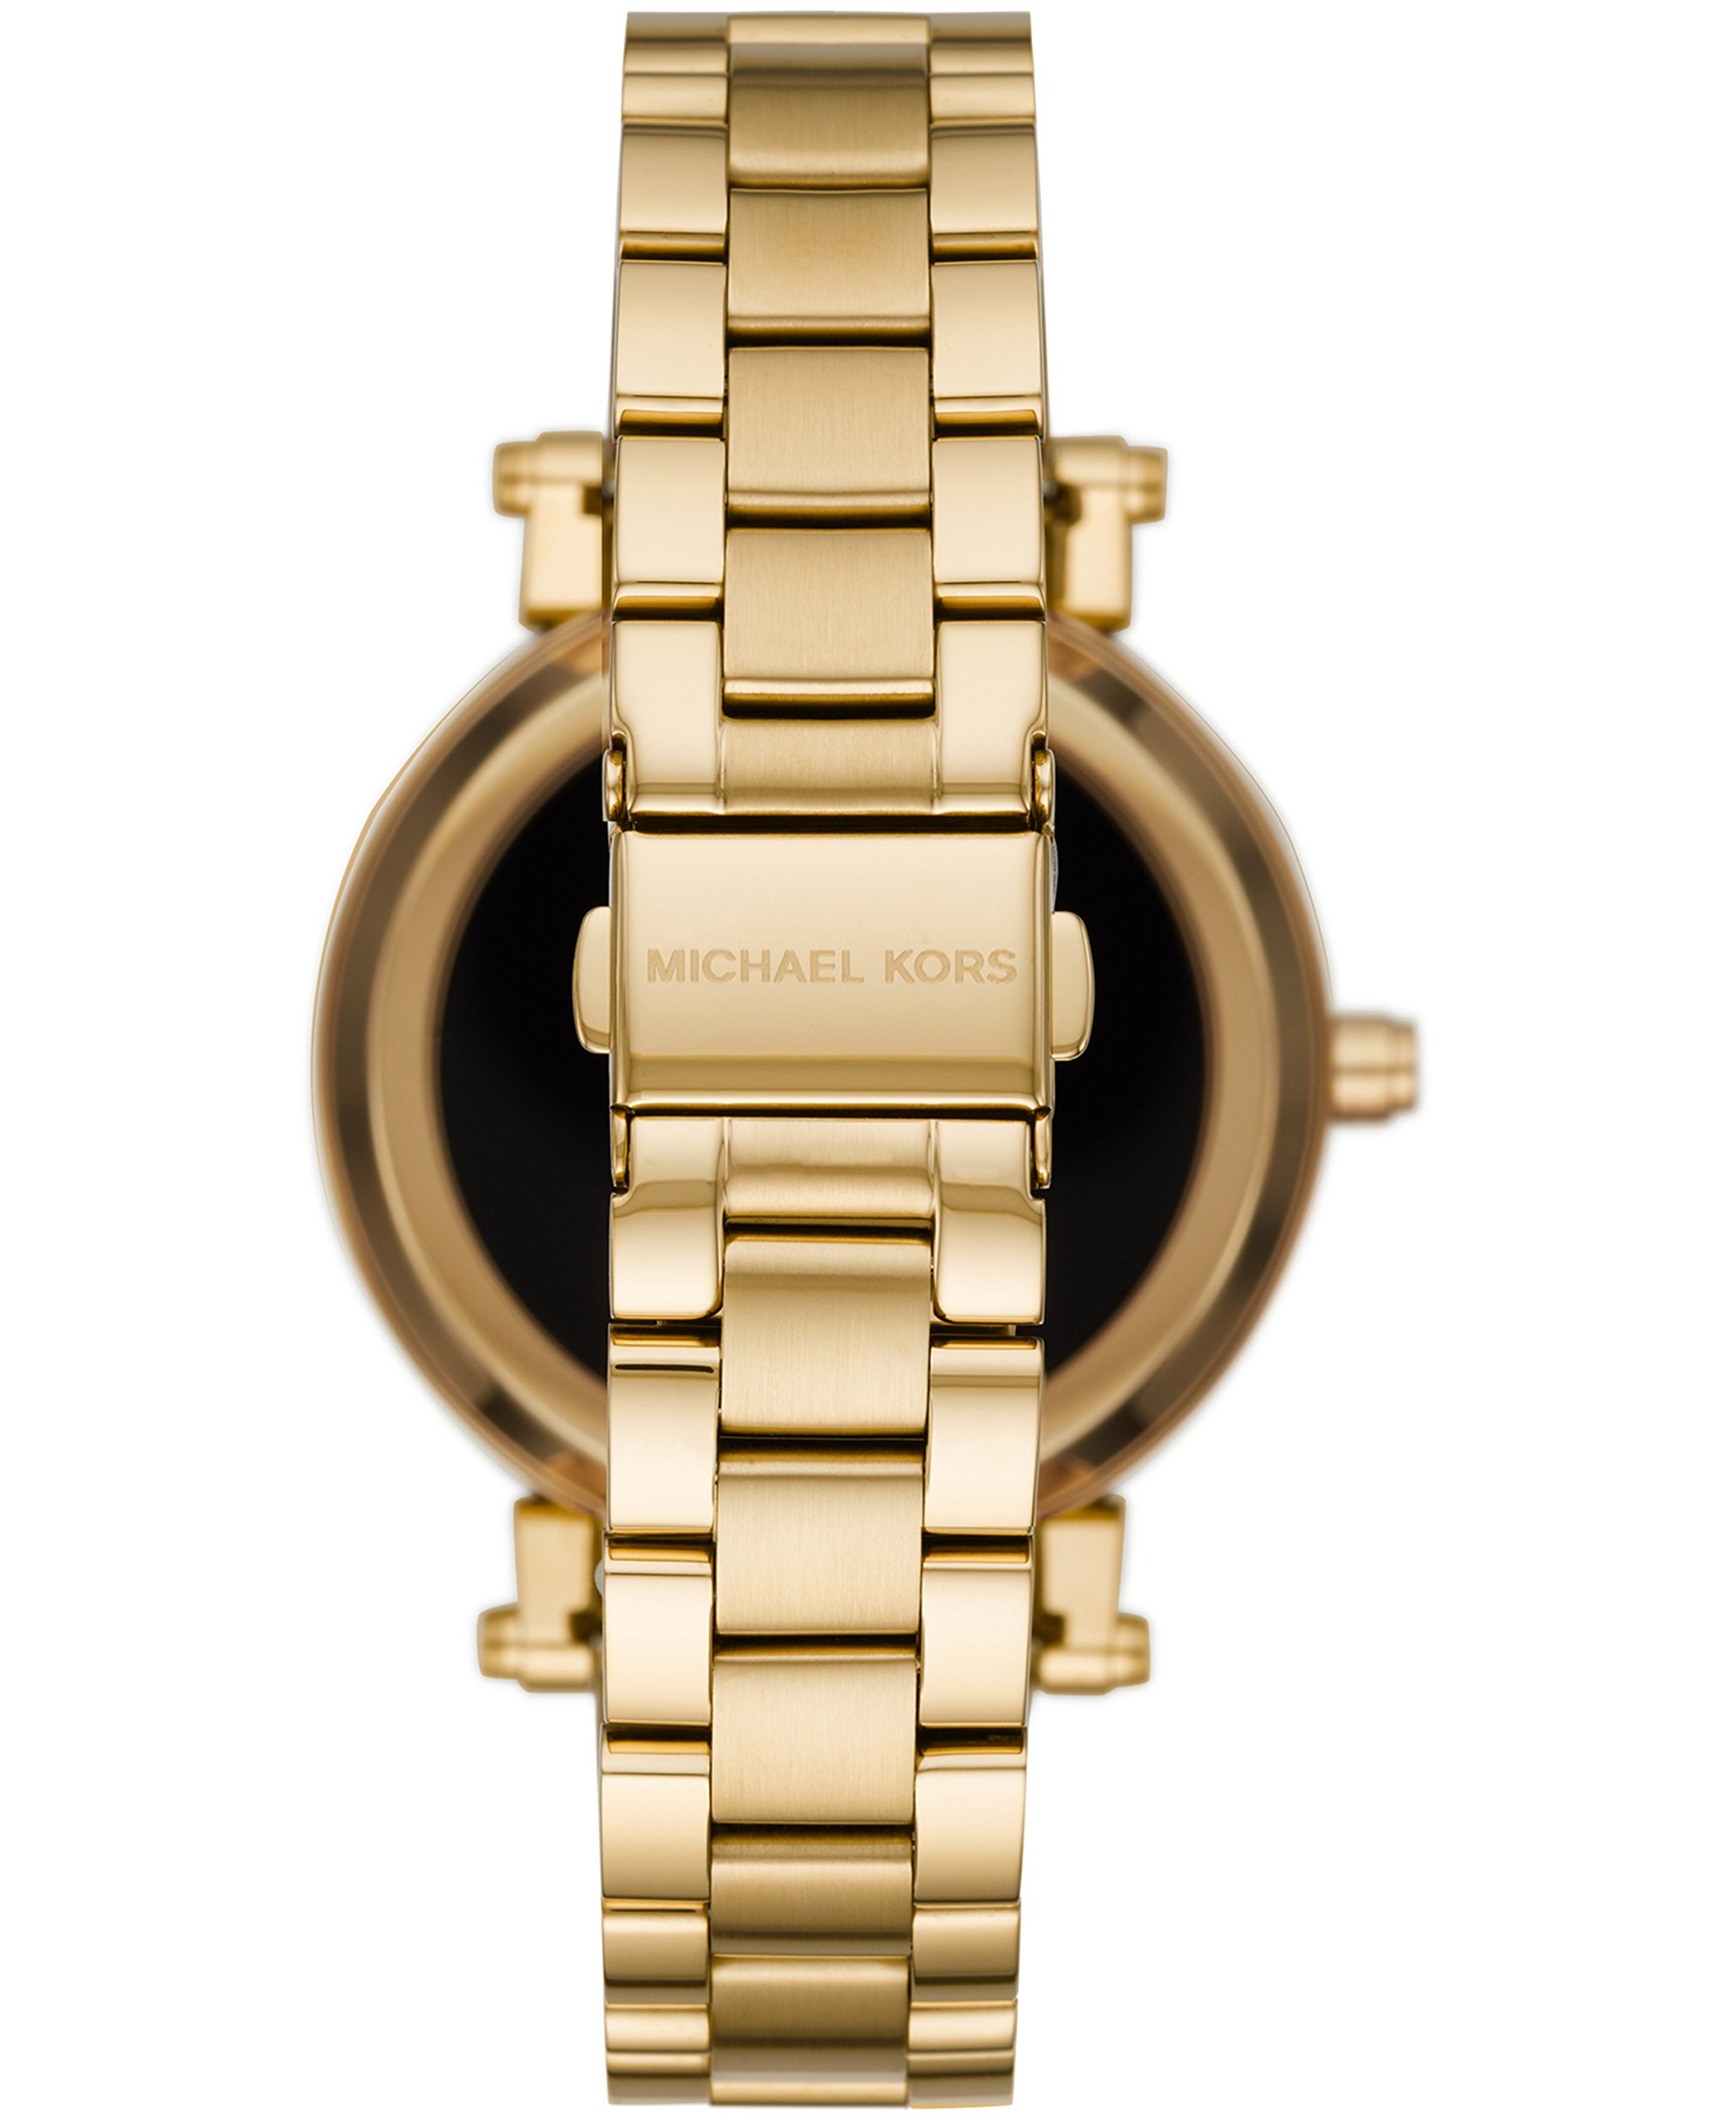 Michael Kors Access Sofie Touchscreen Smartwatch Powered with Wear OS by Google